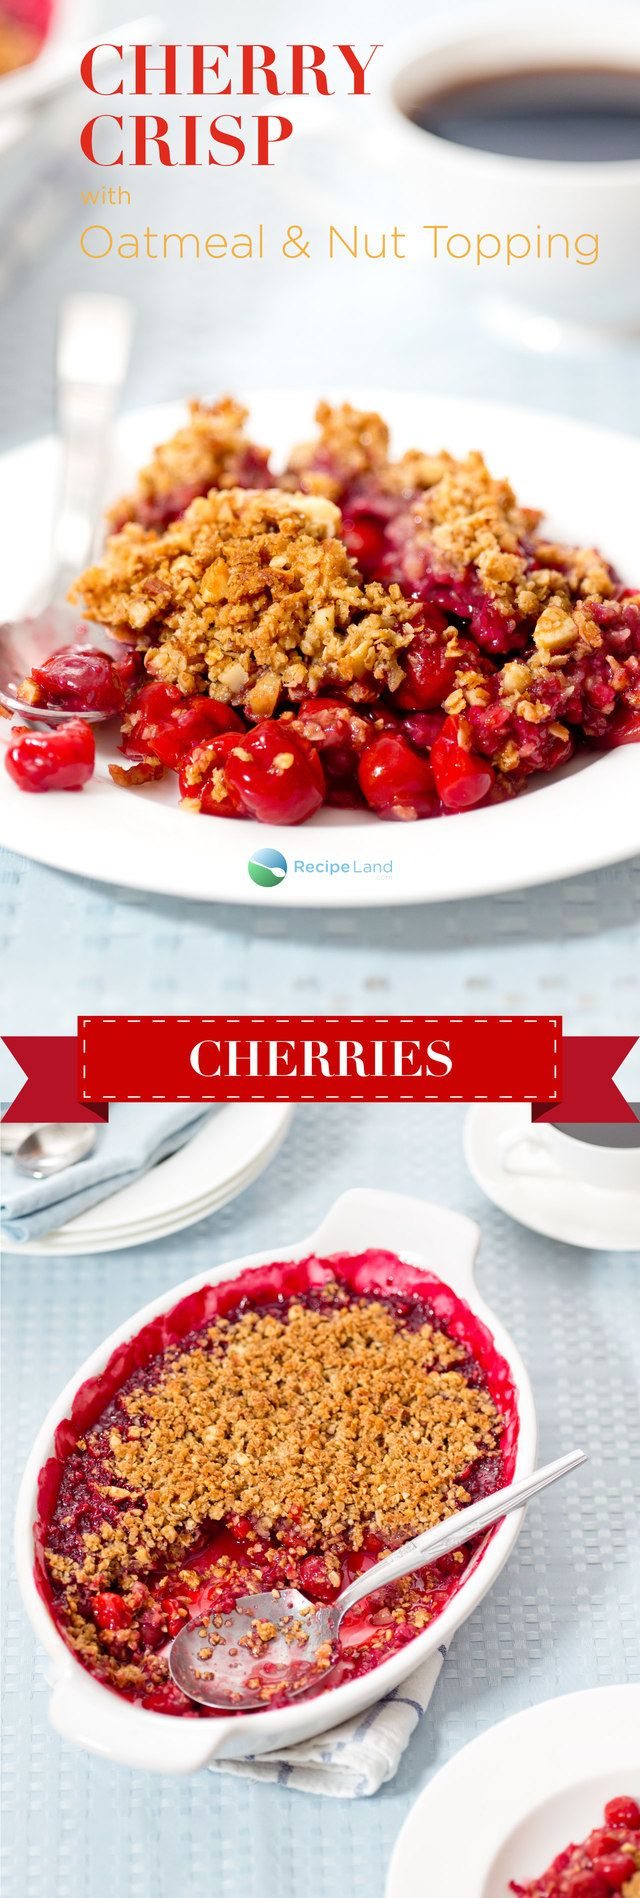 Easy to make cherry crisp with oatmeal and nuts. Great with sour cherries or make cherry crisp with pie filling if you're in a hurry.